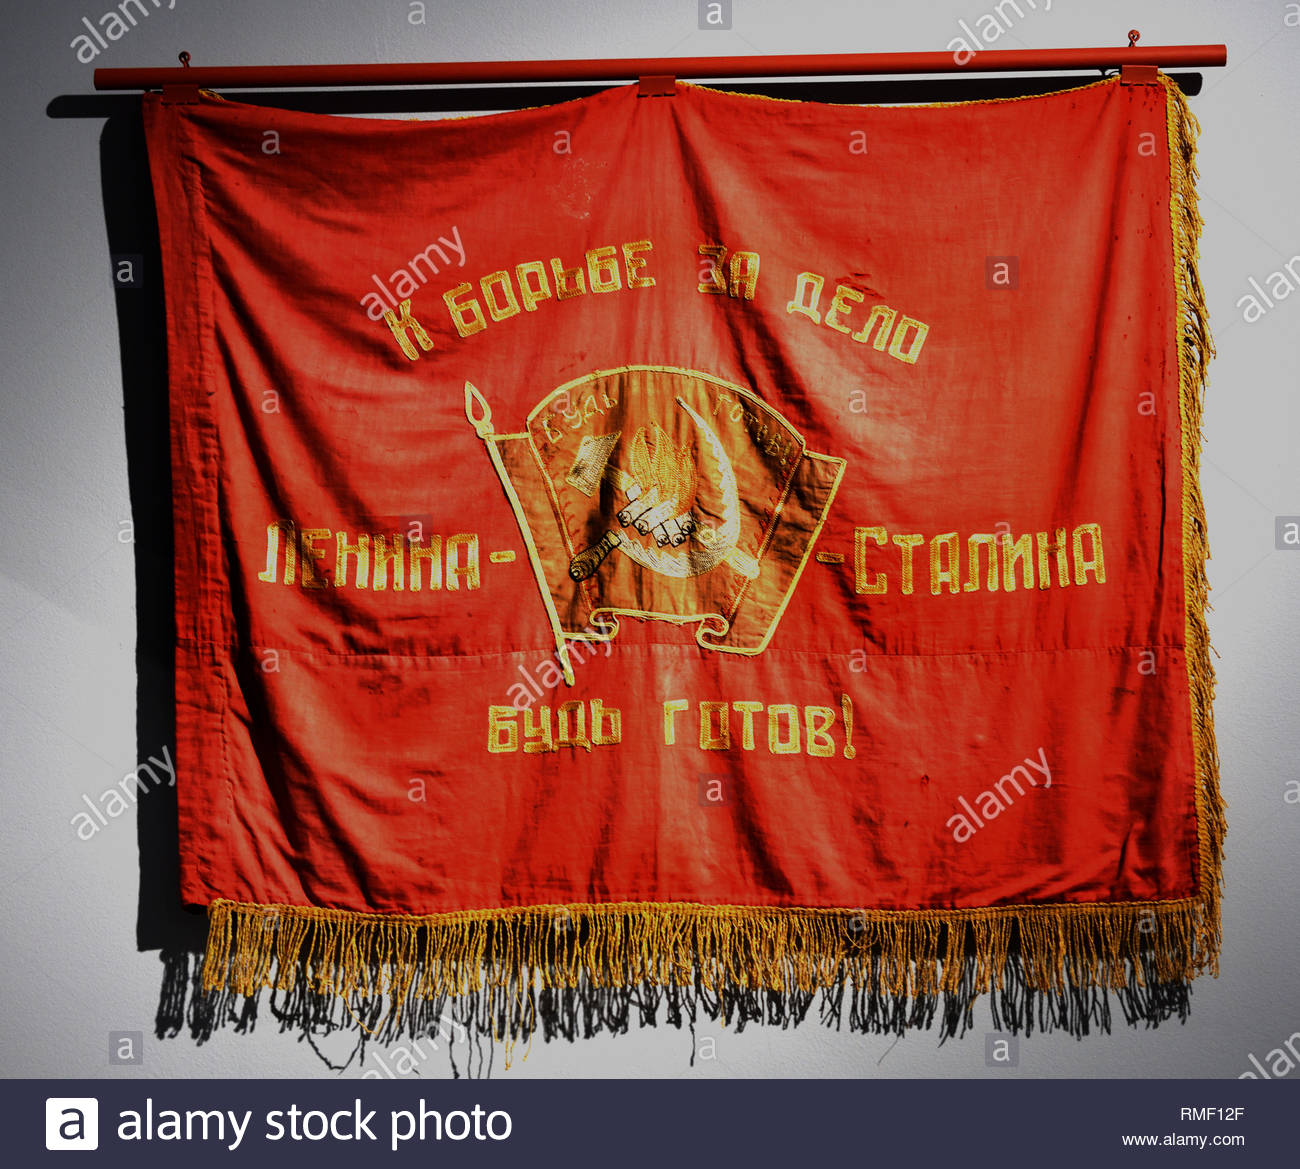 Be ready to Fight for Lenin and Stalin` s Cause. Soviet Union Communist Propaganda (Russia under Lenin and Stalin1921-1953 ). - Stock Image